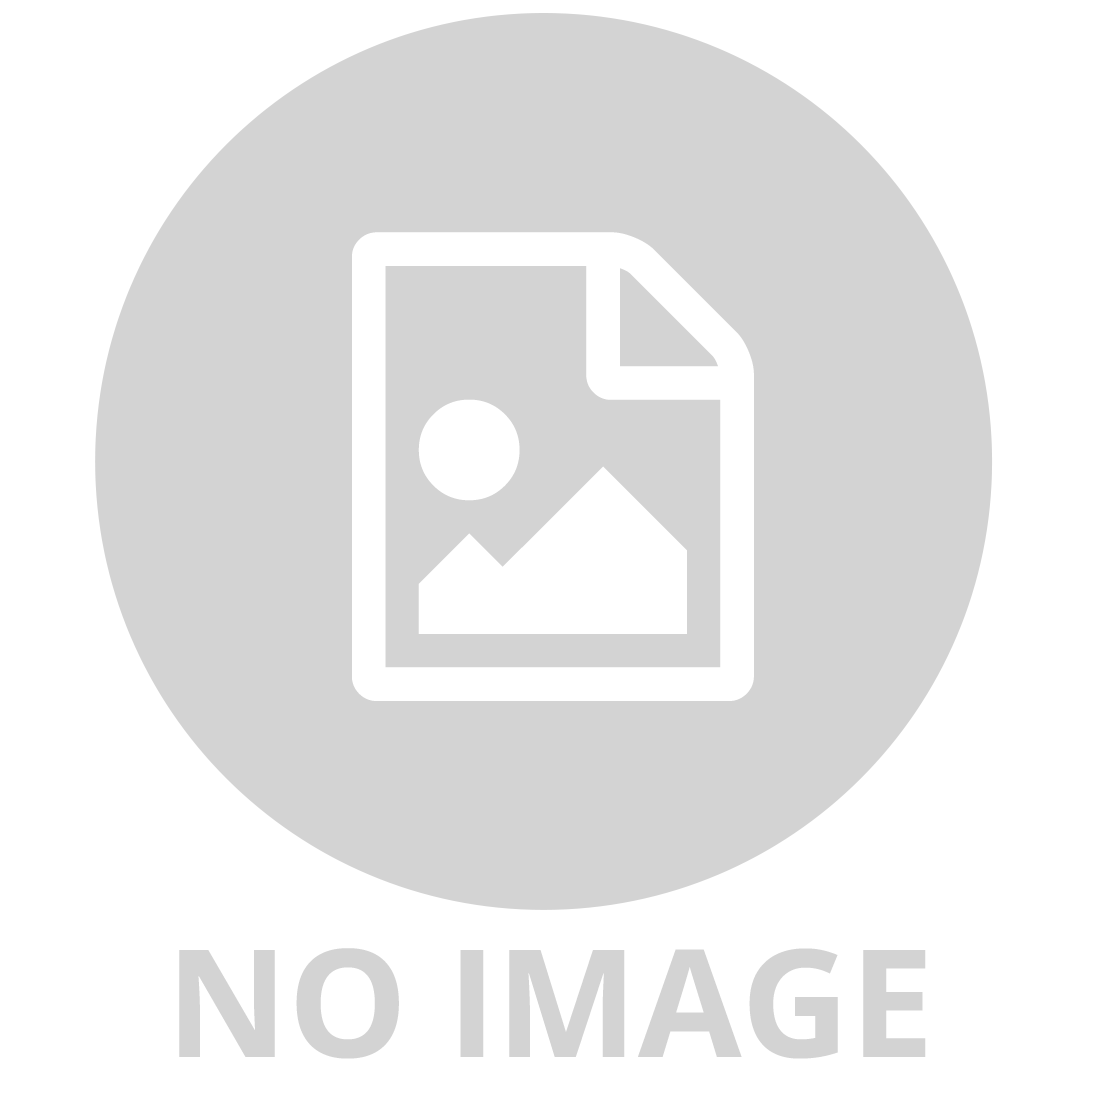 MUSICAL BALLERINA JEWELLERY BOX  WITH FOUR DRAWERS